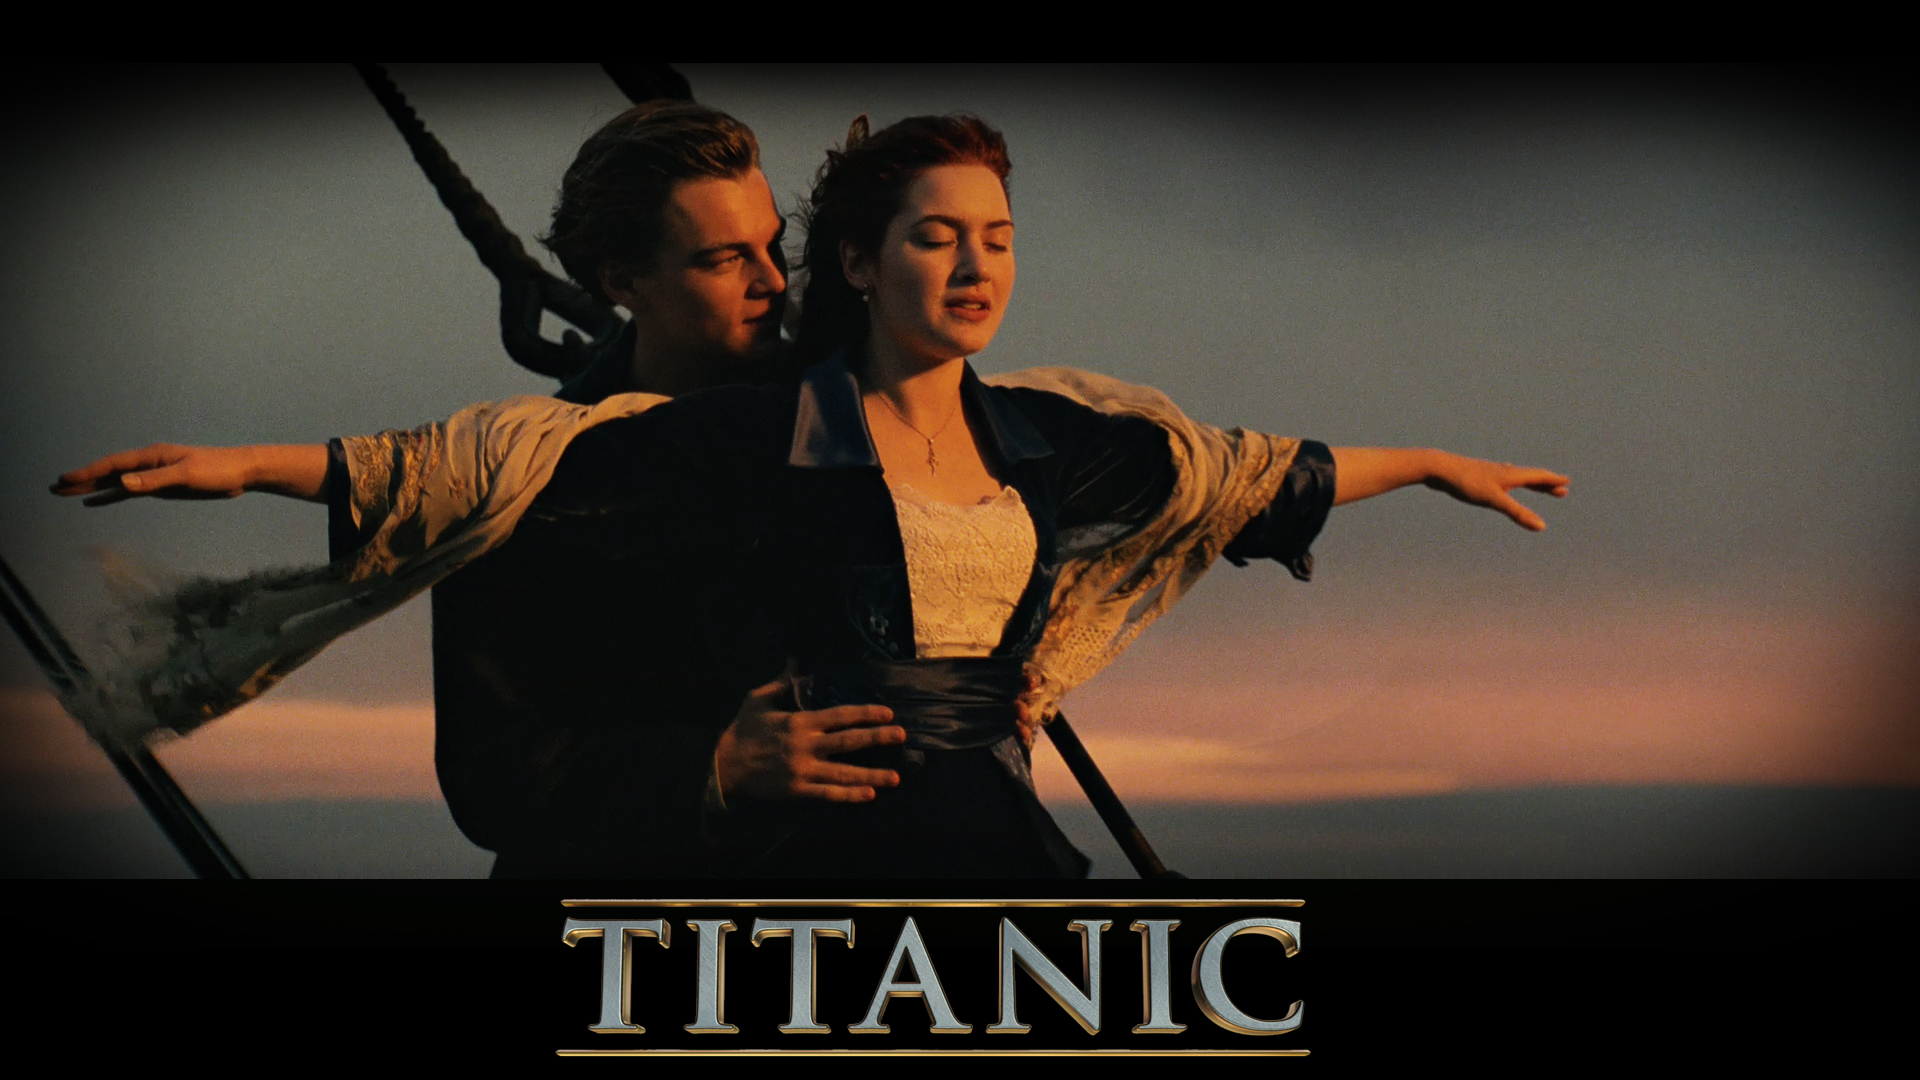 Titanic 3D Wallpapers   coming in April 2012 Movie 1920x1080